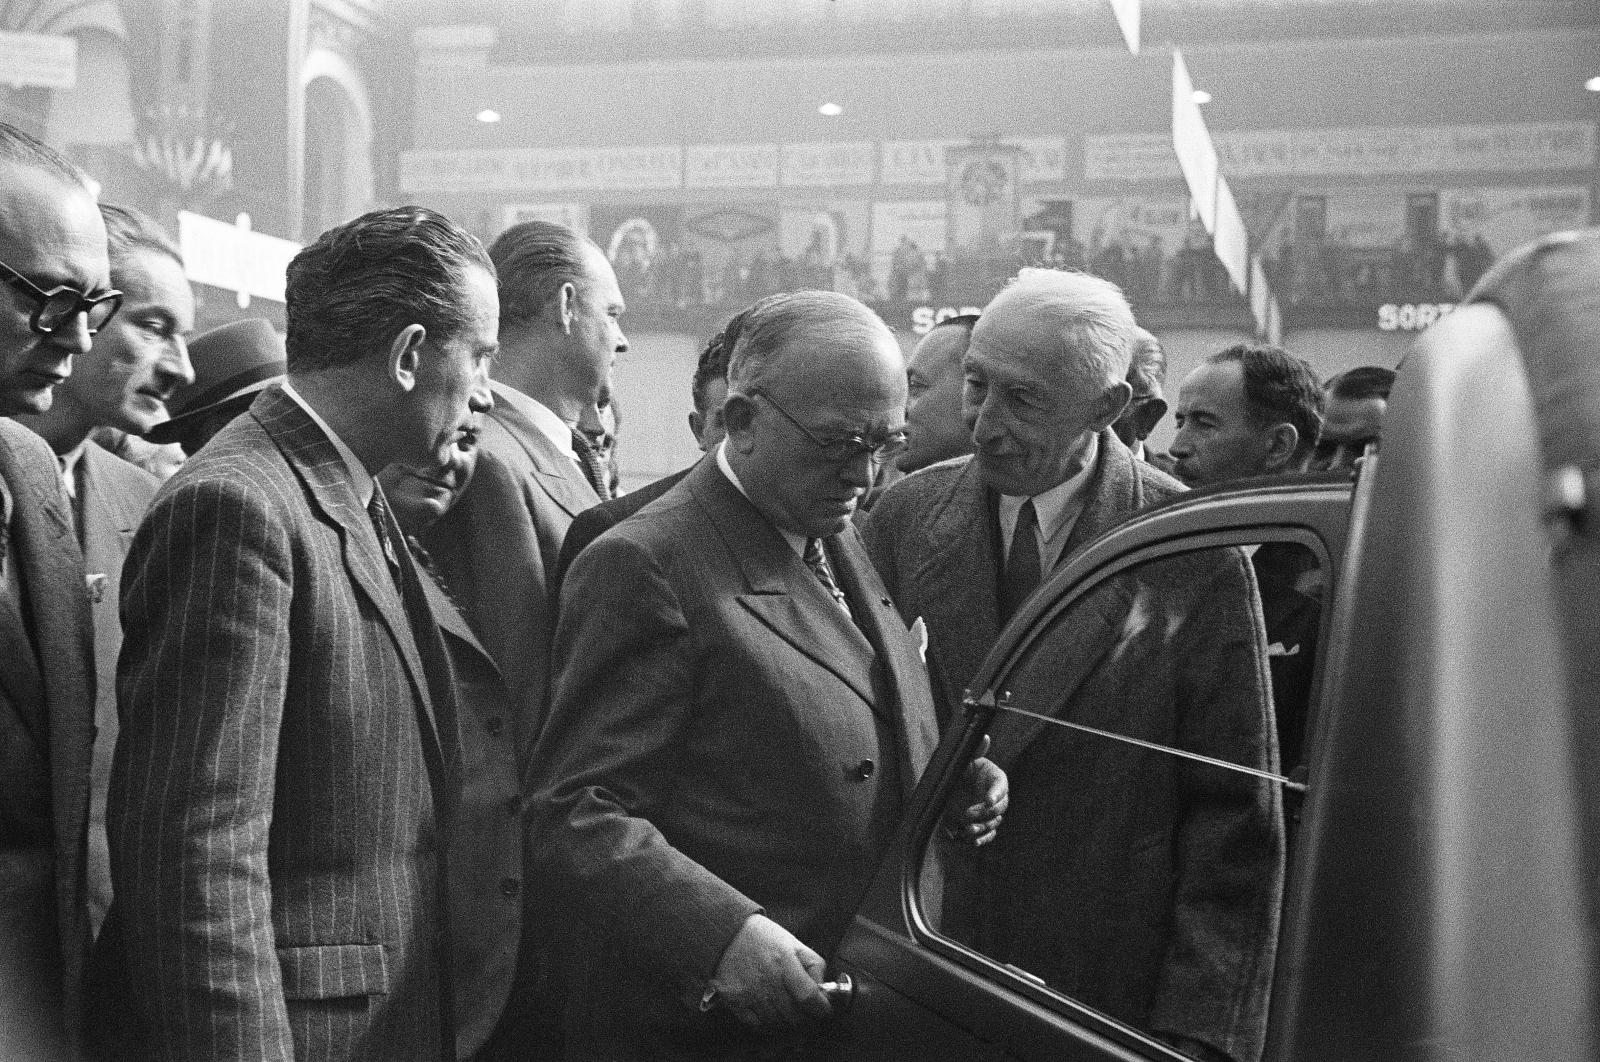 Pierre Boulanger presents the 2CV in 1948